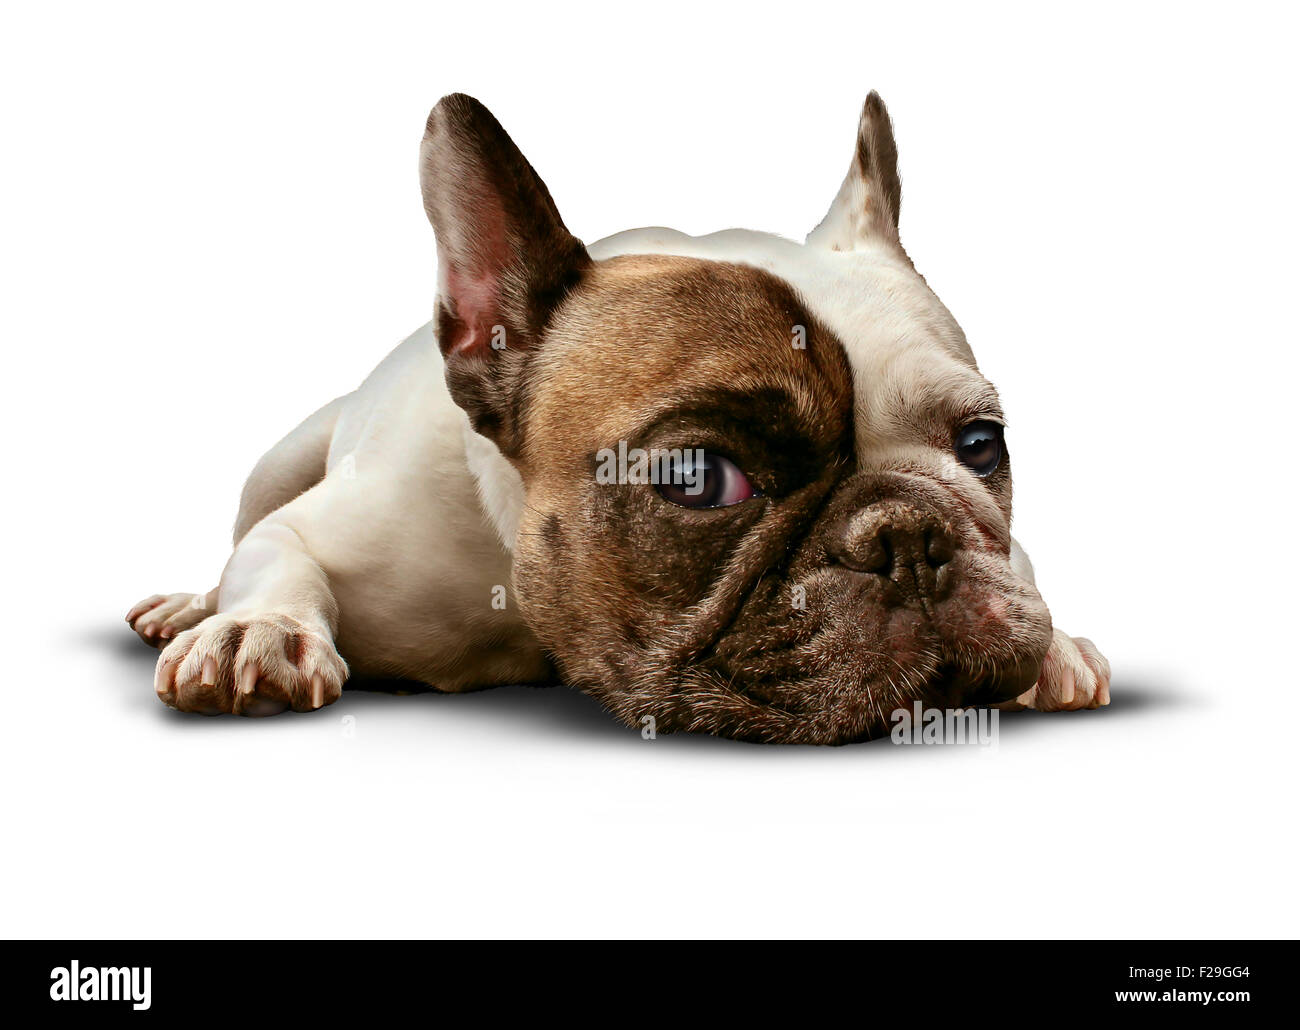 Dog lying down on a white background as a cute french bulldog looking sad and lonely or laying on the floor as a - Stock Image